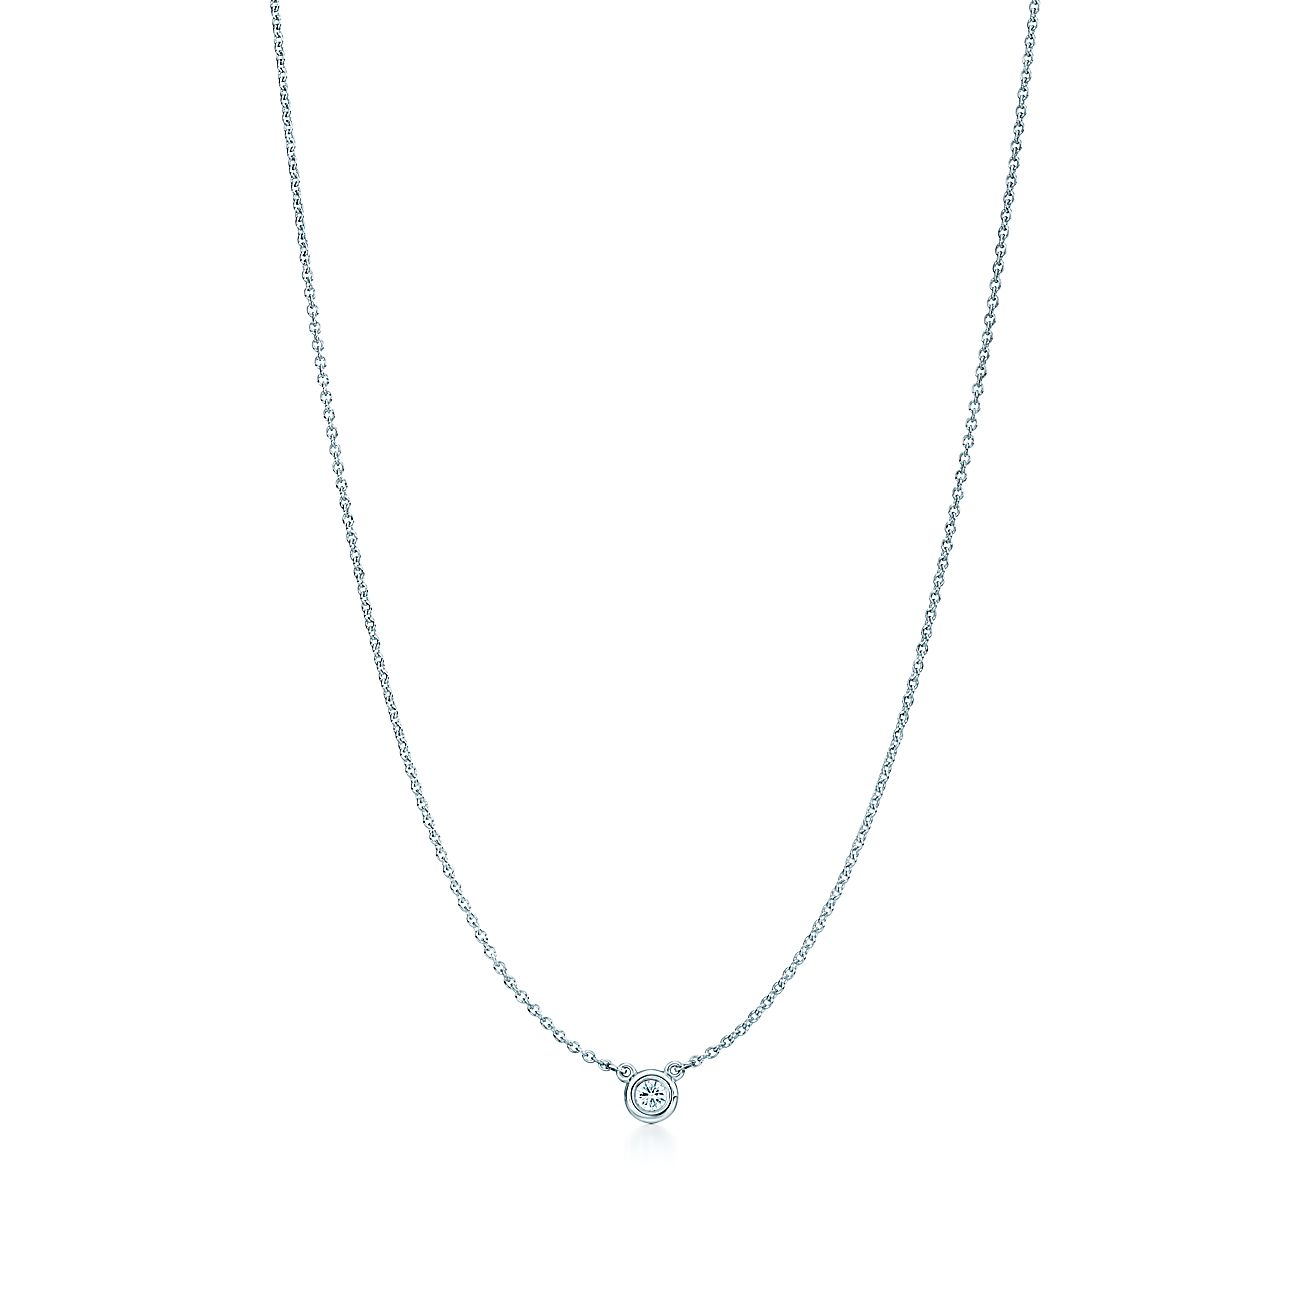 Elsa peretti diamonds by the yard pendant in sterling silver elsa peretti diamonds by the yard pendant in sterling silver tiffany co aloadofball